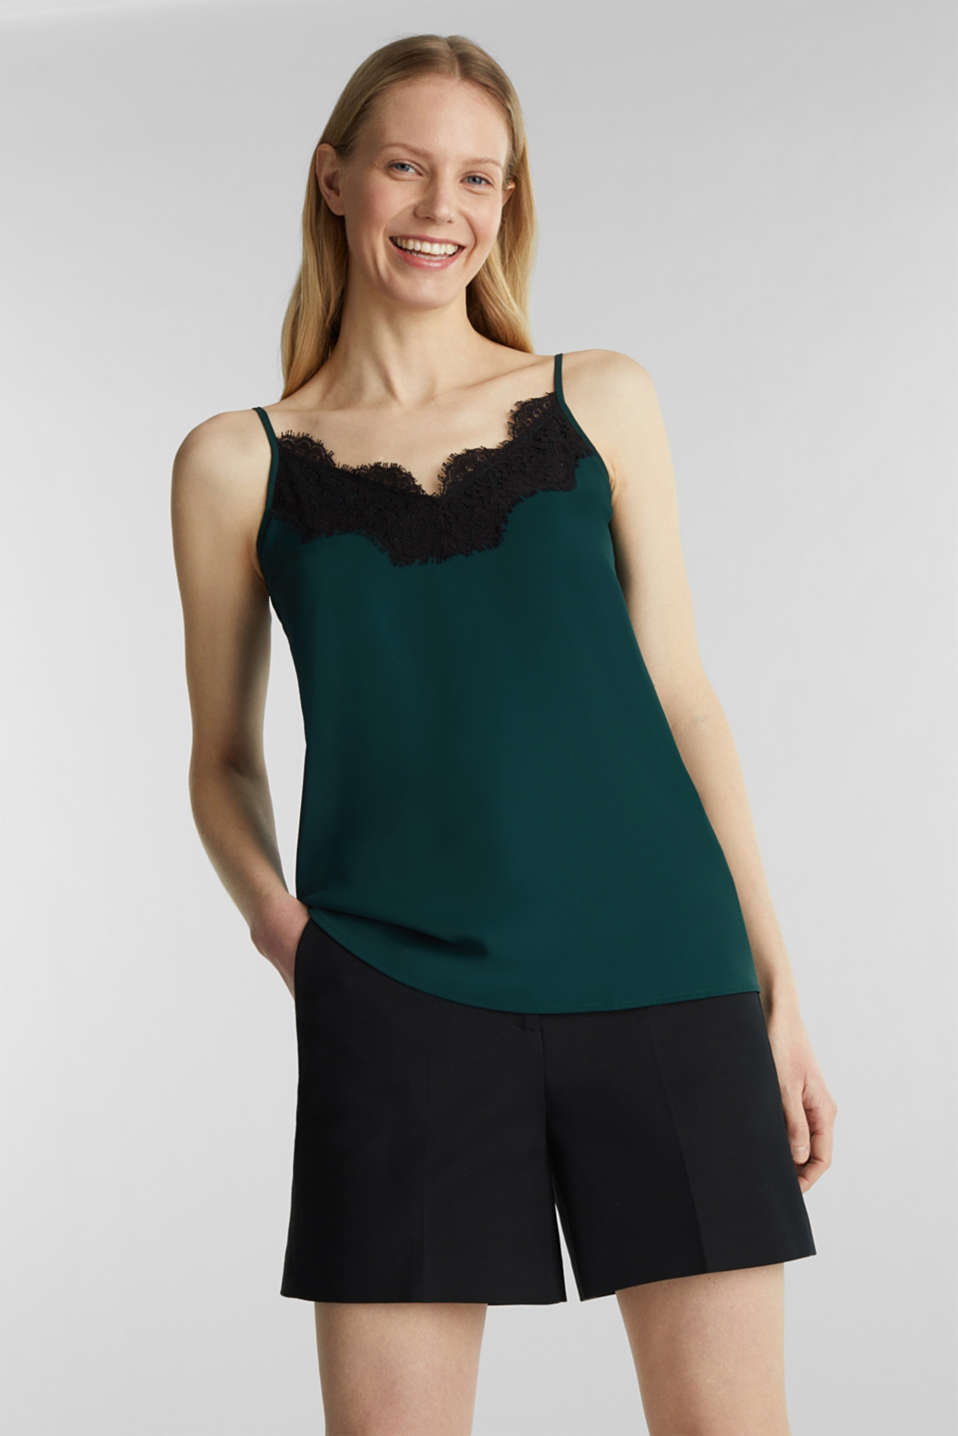 Top with adjustable spaghetti straps and lace